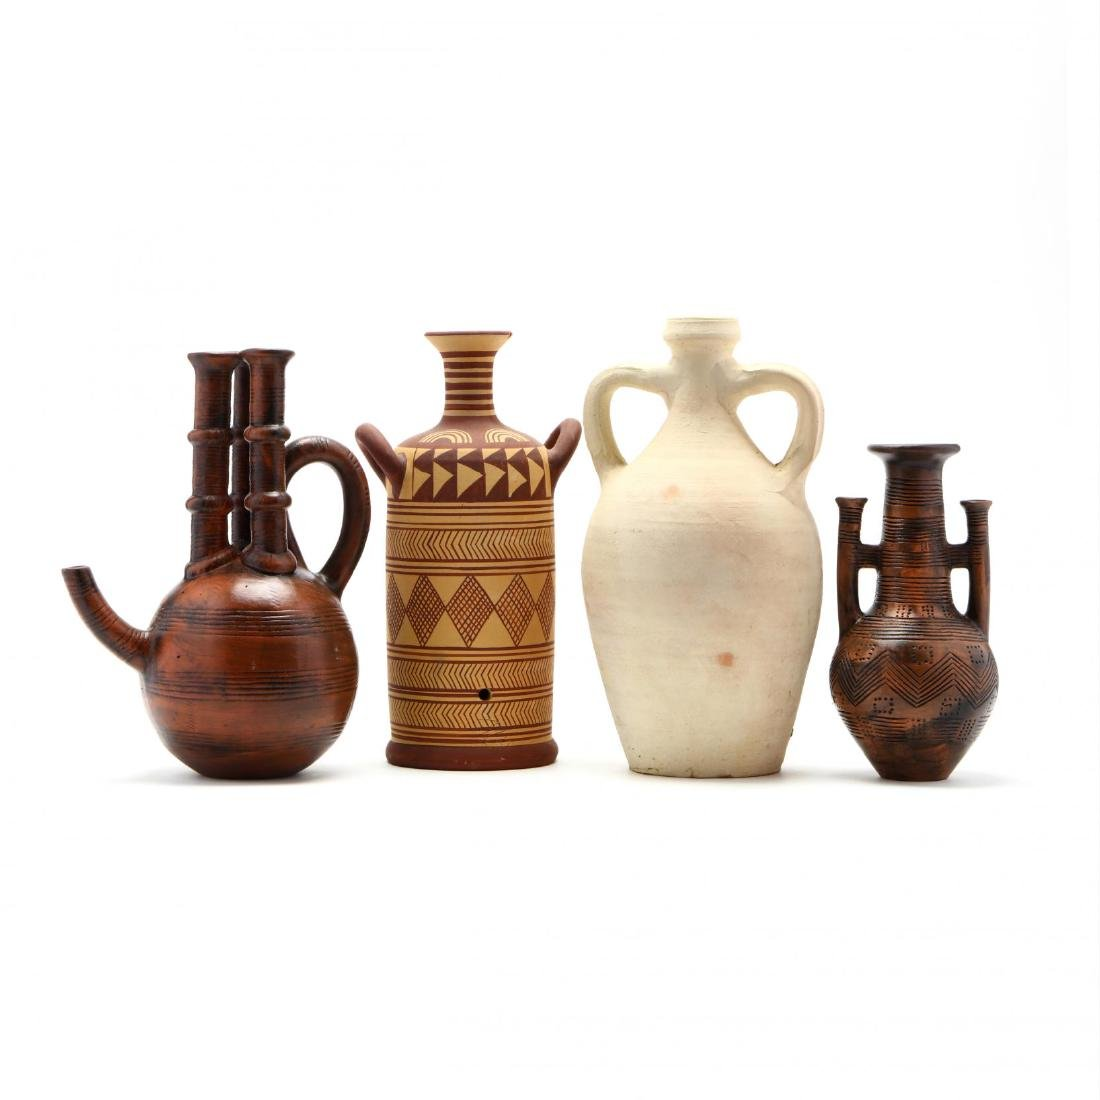 Four Pieces of Contemporary Cypriot Pottery